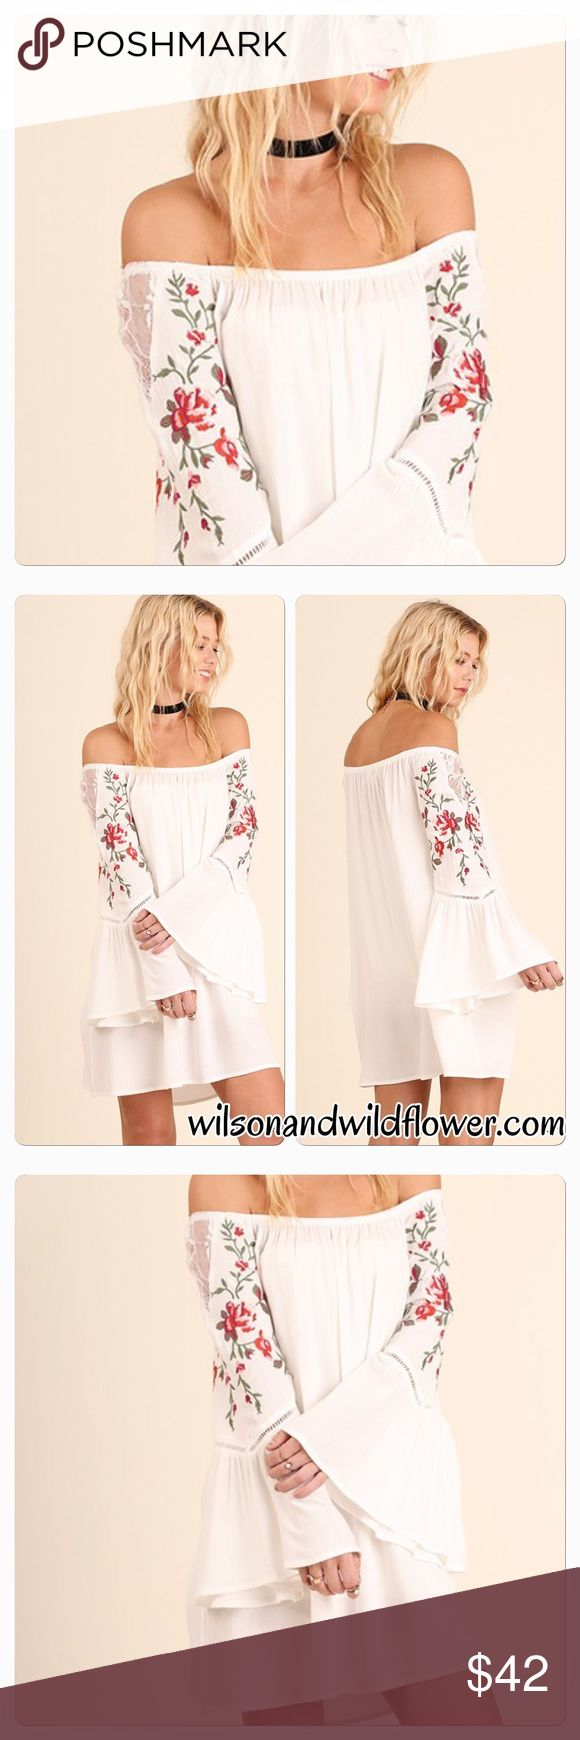 Beautiful White Off Shoulder Dress Beautiful White Off Shoulder Dress. Also available at www.wilsonandwildflower.com with free shipping. Dresses